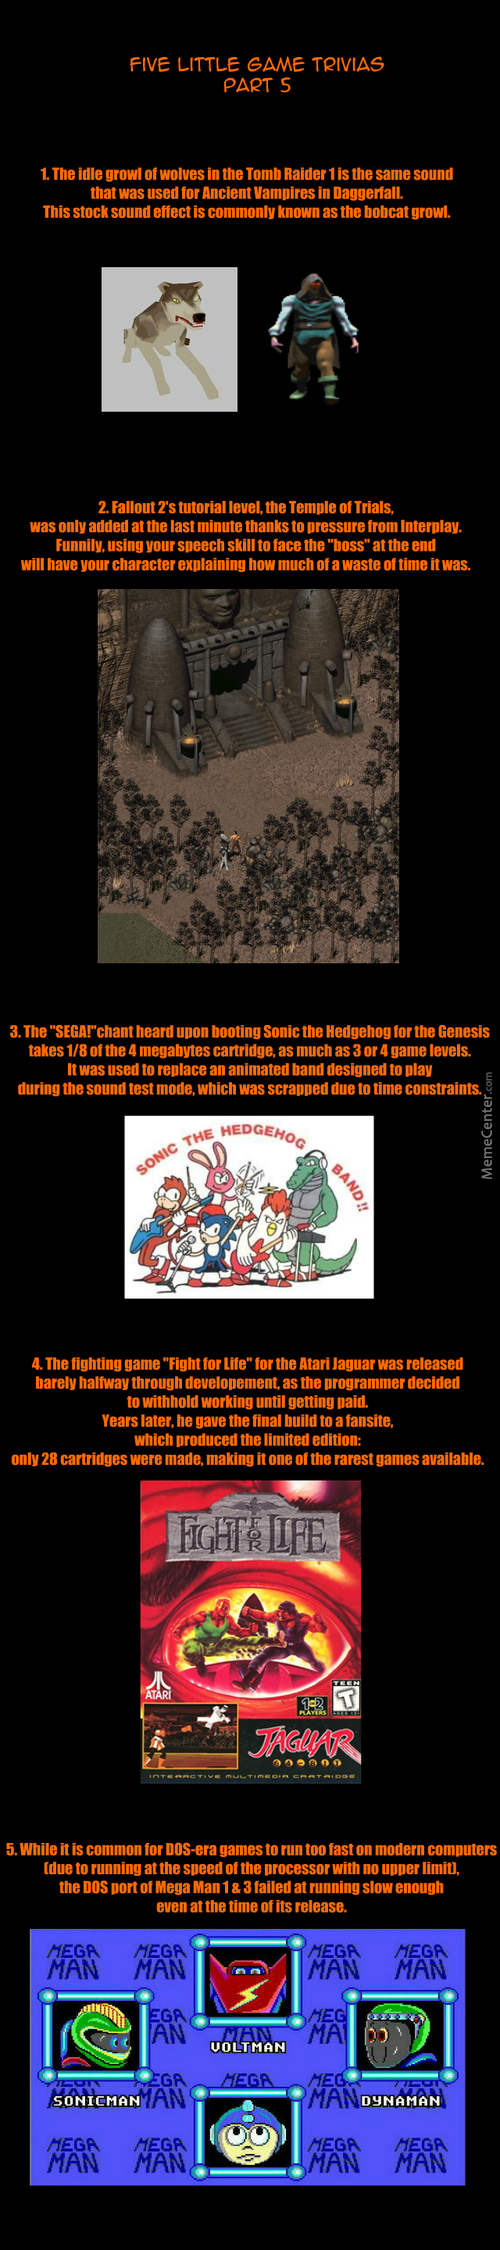 Five Little Game Trivias: Part 5.